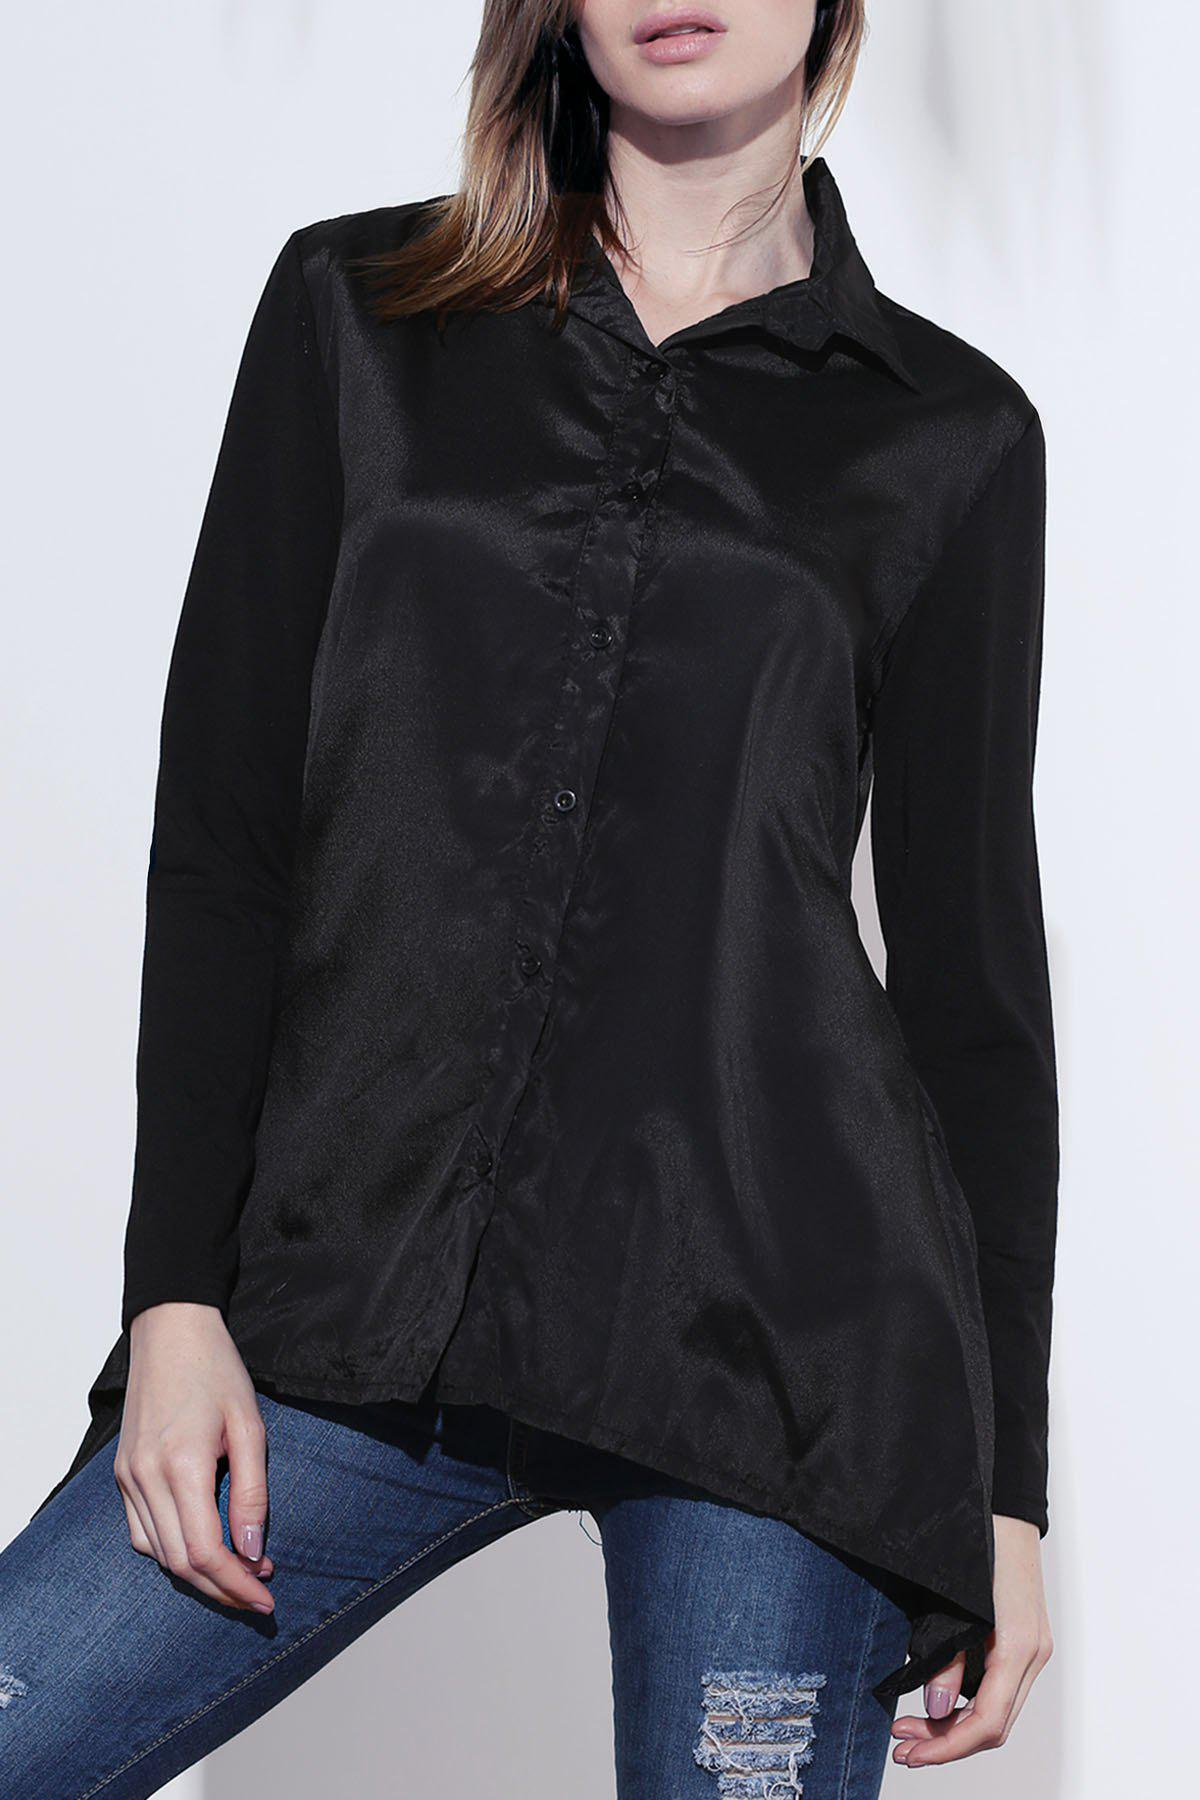 Irregular Hem Long Sleeve Turn Down Collar Loose-Fitting Blouse - BLACK ONE SIZE